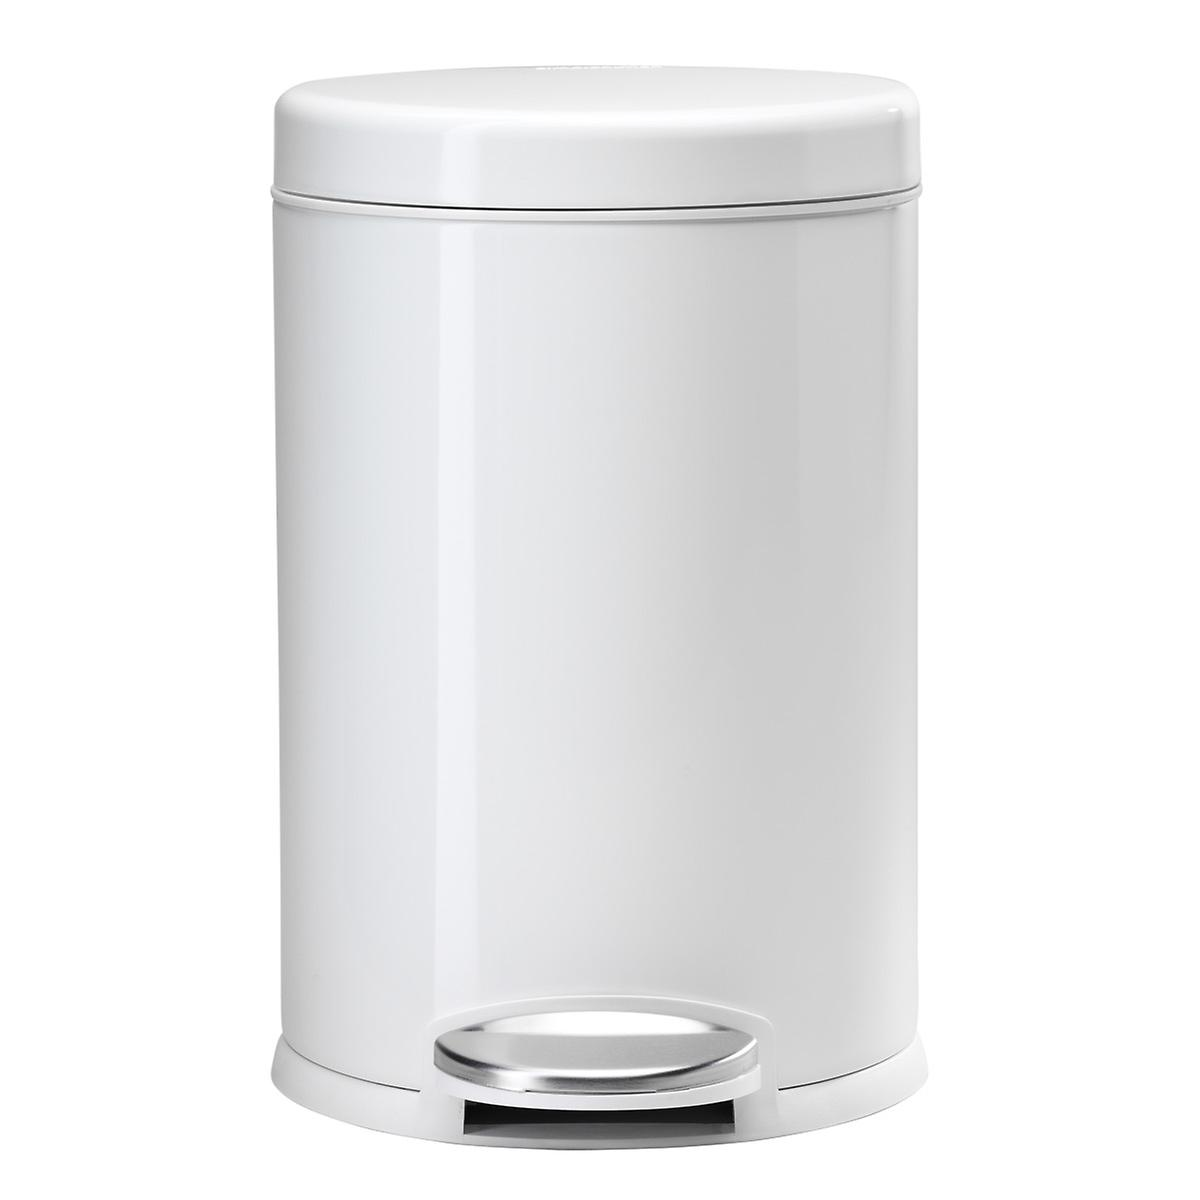 simplehuman White 1.2 gal. Round Step Trash Can